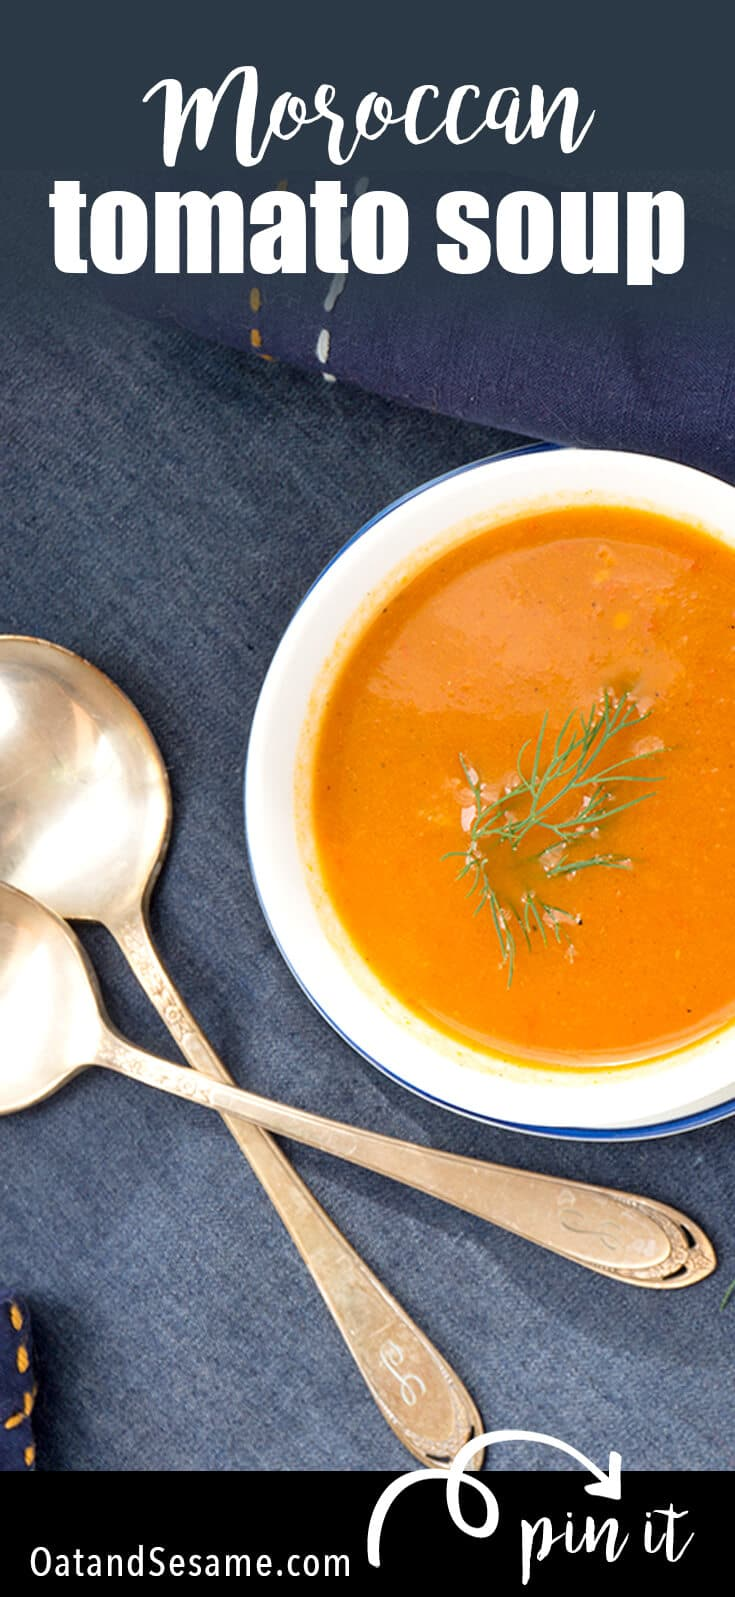 Spiced Moroccan Tomato Soup - an easy and simple twist on tomato soup! | #HEALTHY | #TOMATOES | #SOUP | #FALL | #MOROCCAN | #VEGETARIAN | #VEGAN | #Recipes at OatandSesame.com